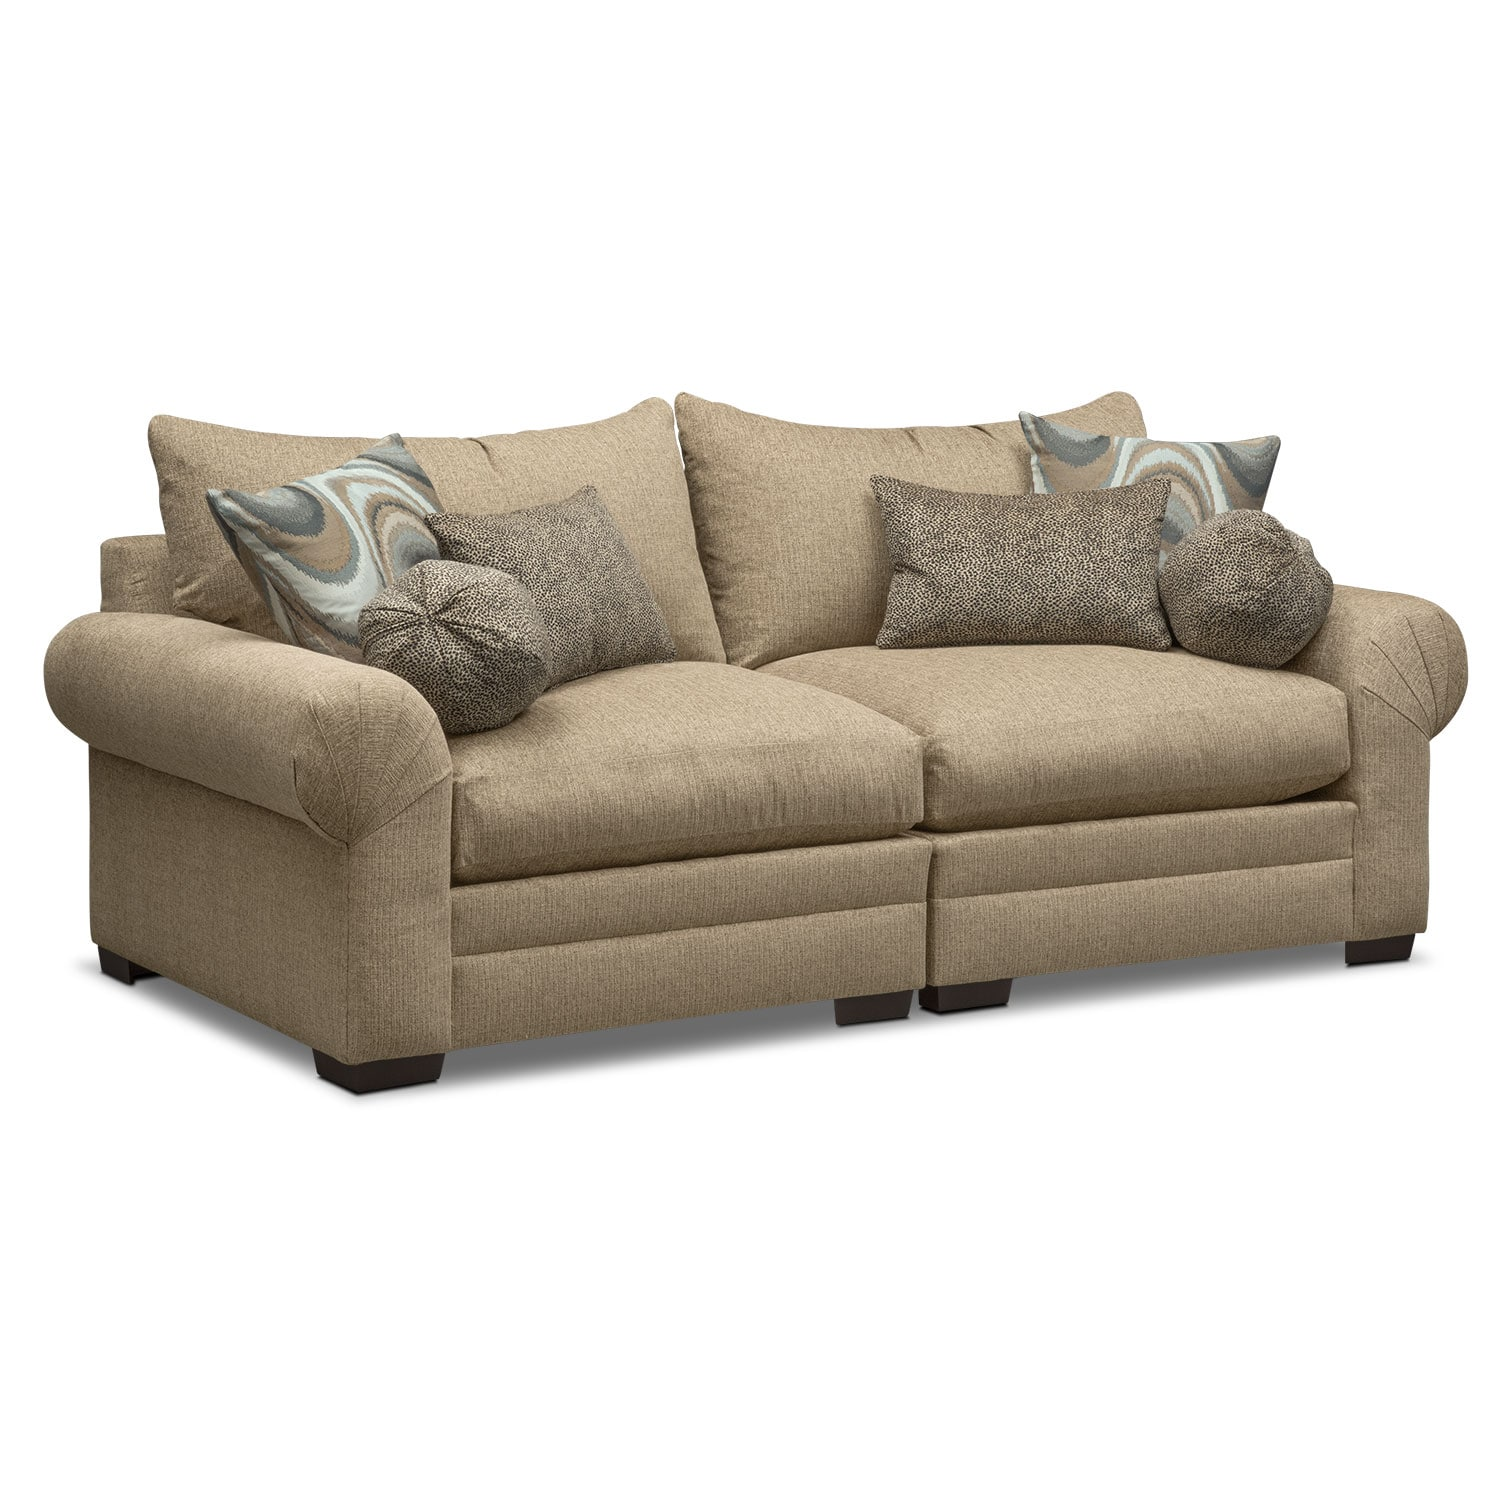 Wilshire Sofa - Taupe